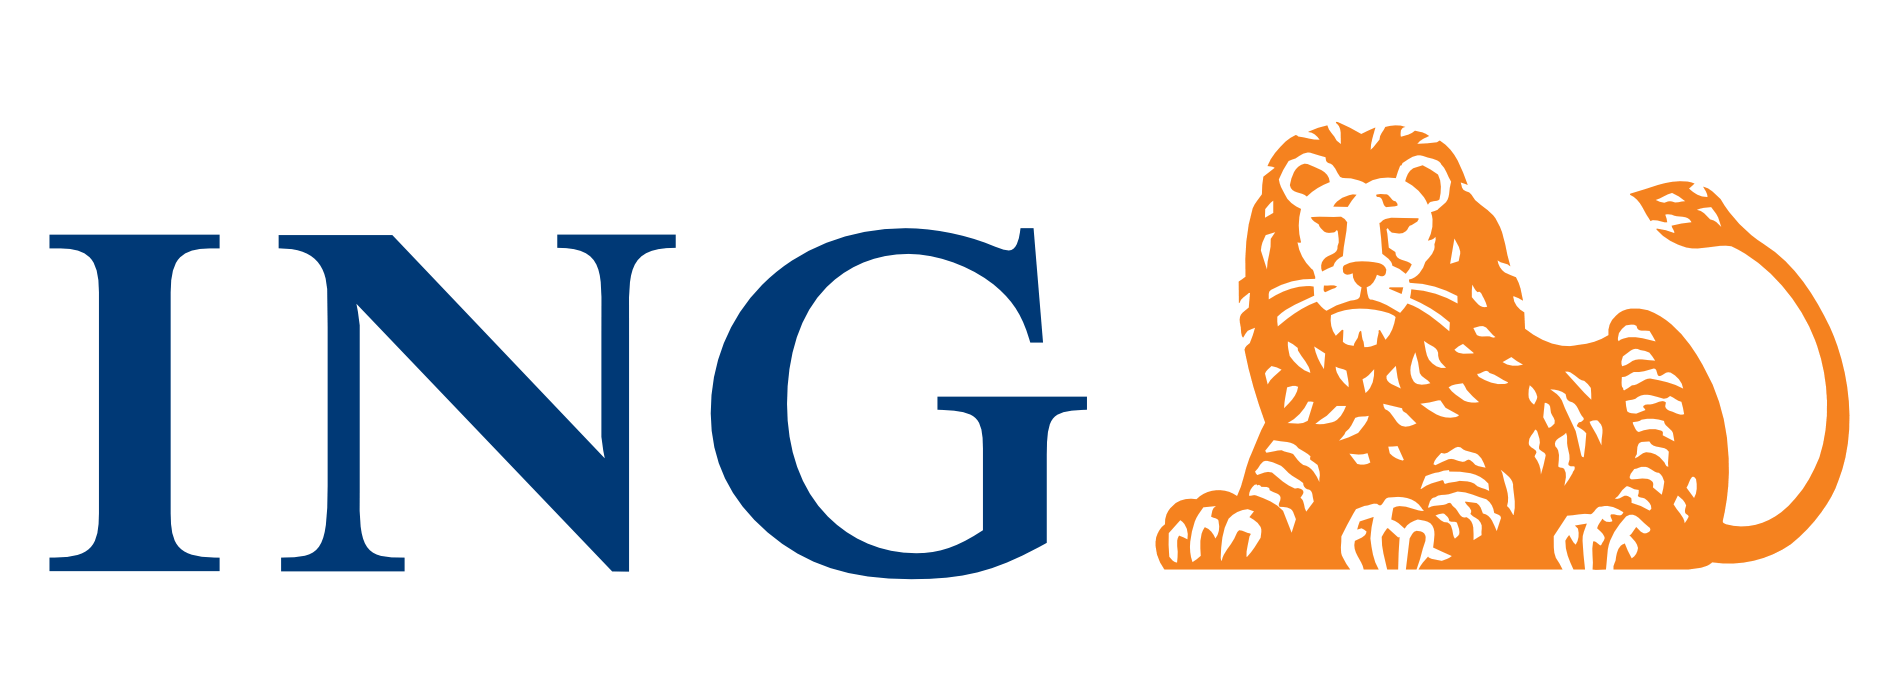 ING's traditional serif font looks dignified